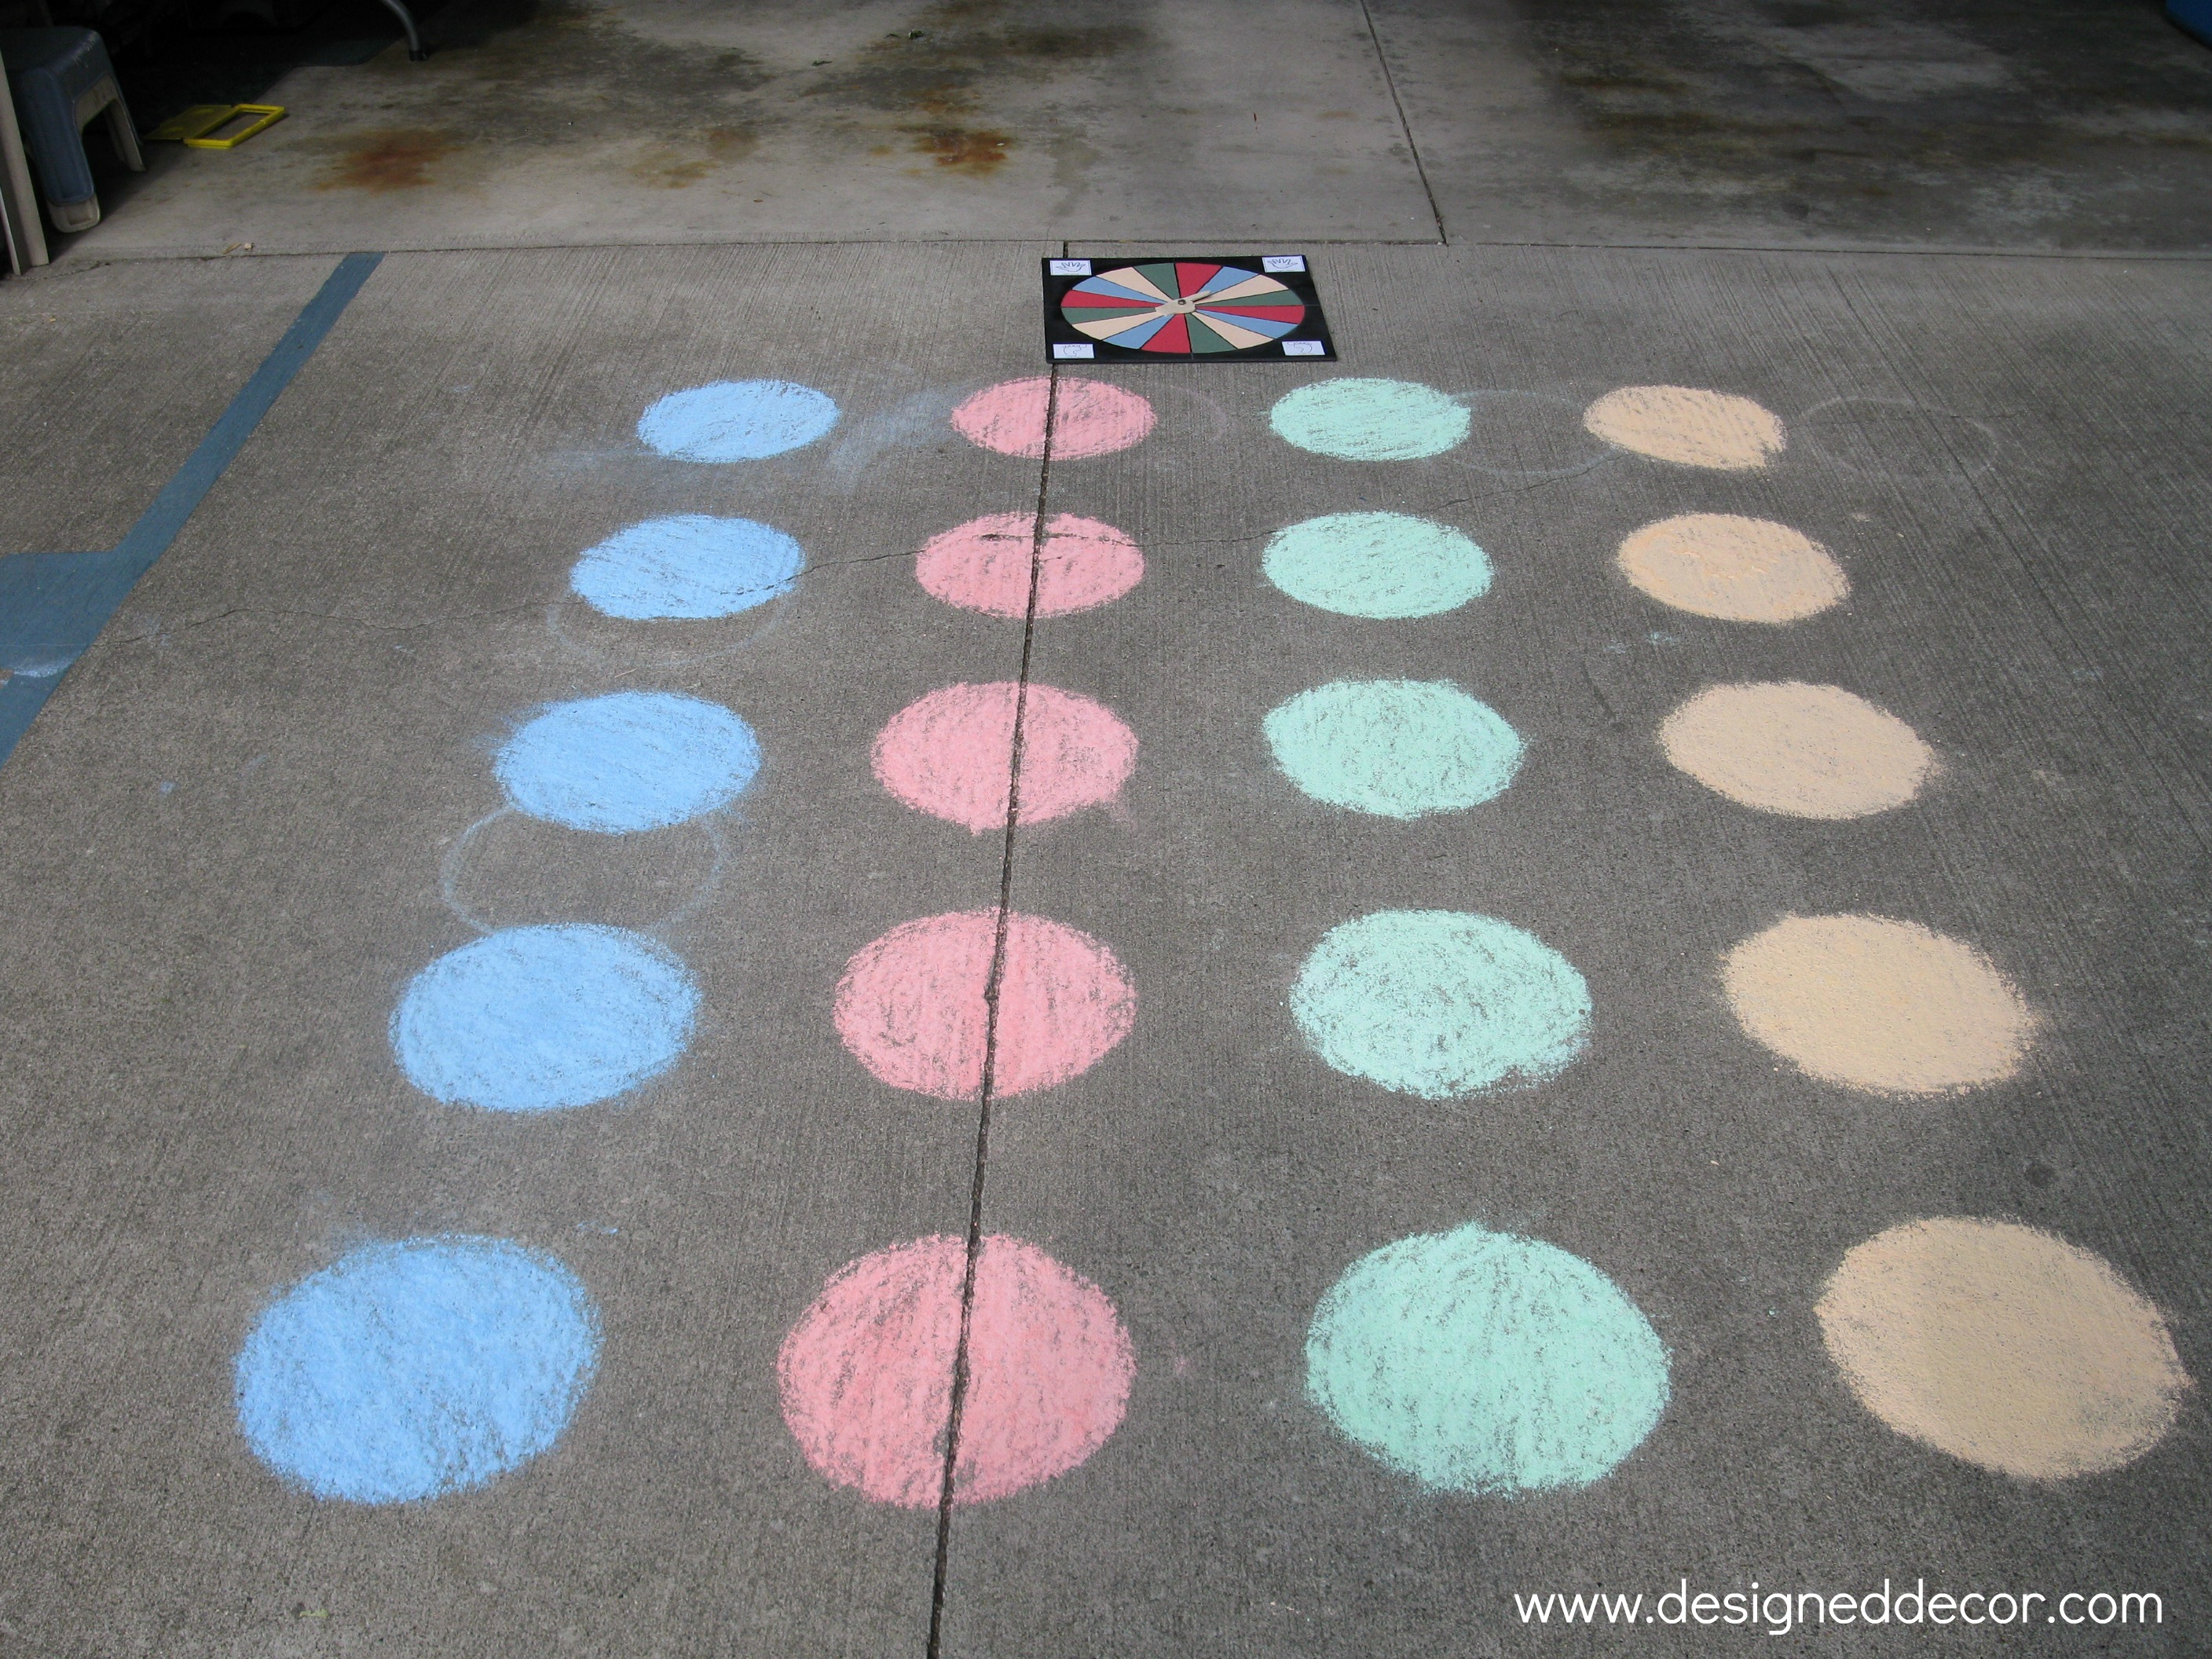 image regarding Finger Twister Printable referred to as D.I.Y. Twister Recreation - Created Decor